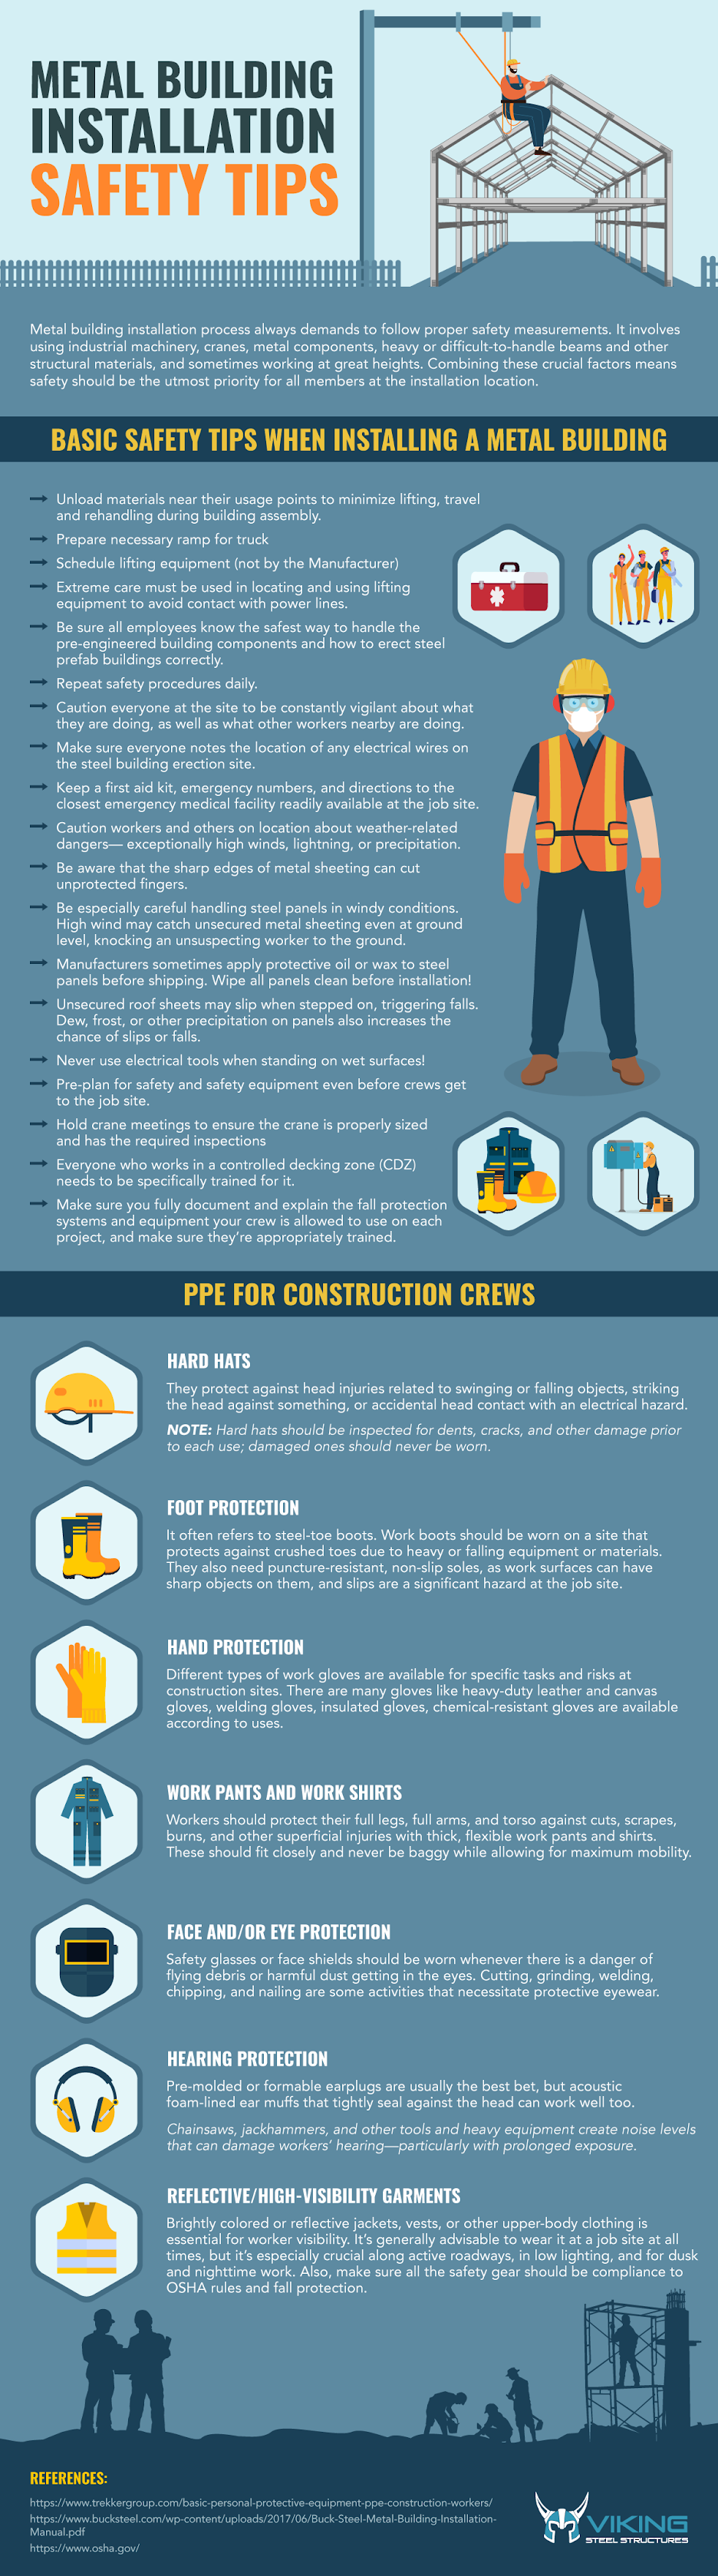 Metal Building Installation Safety Tips